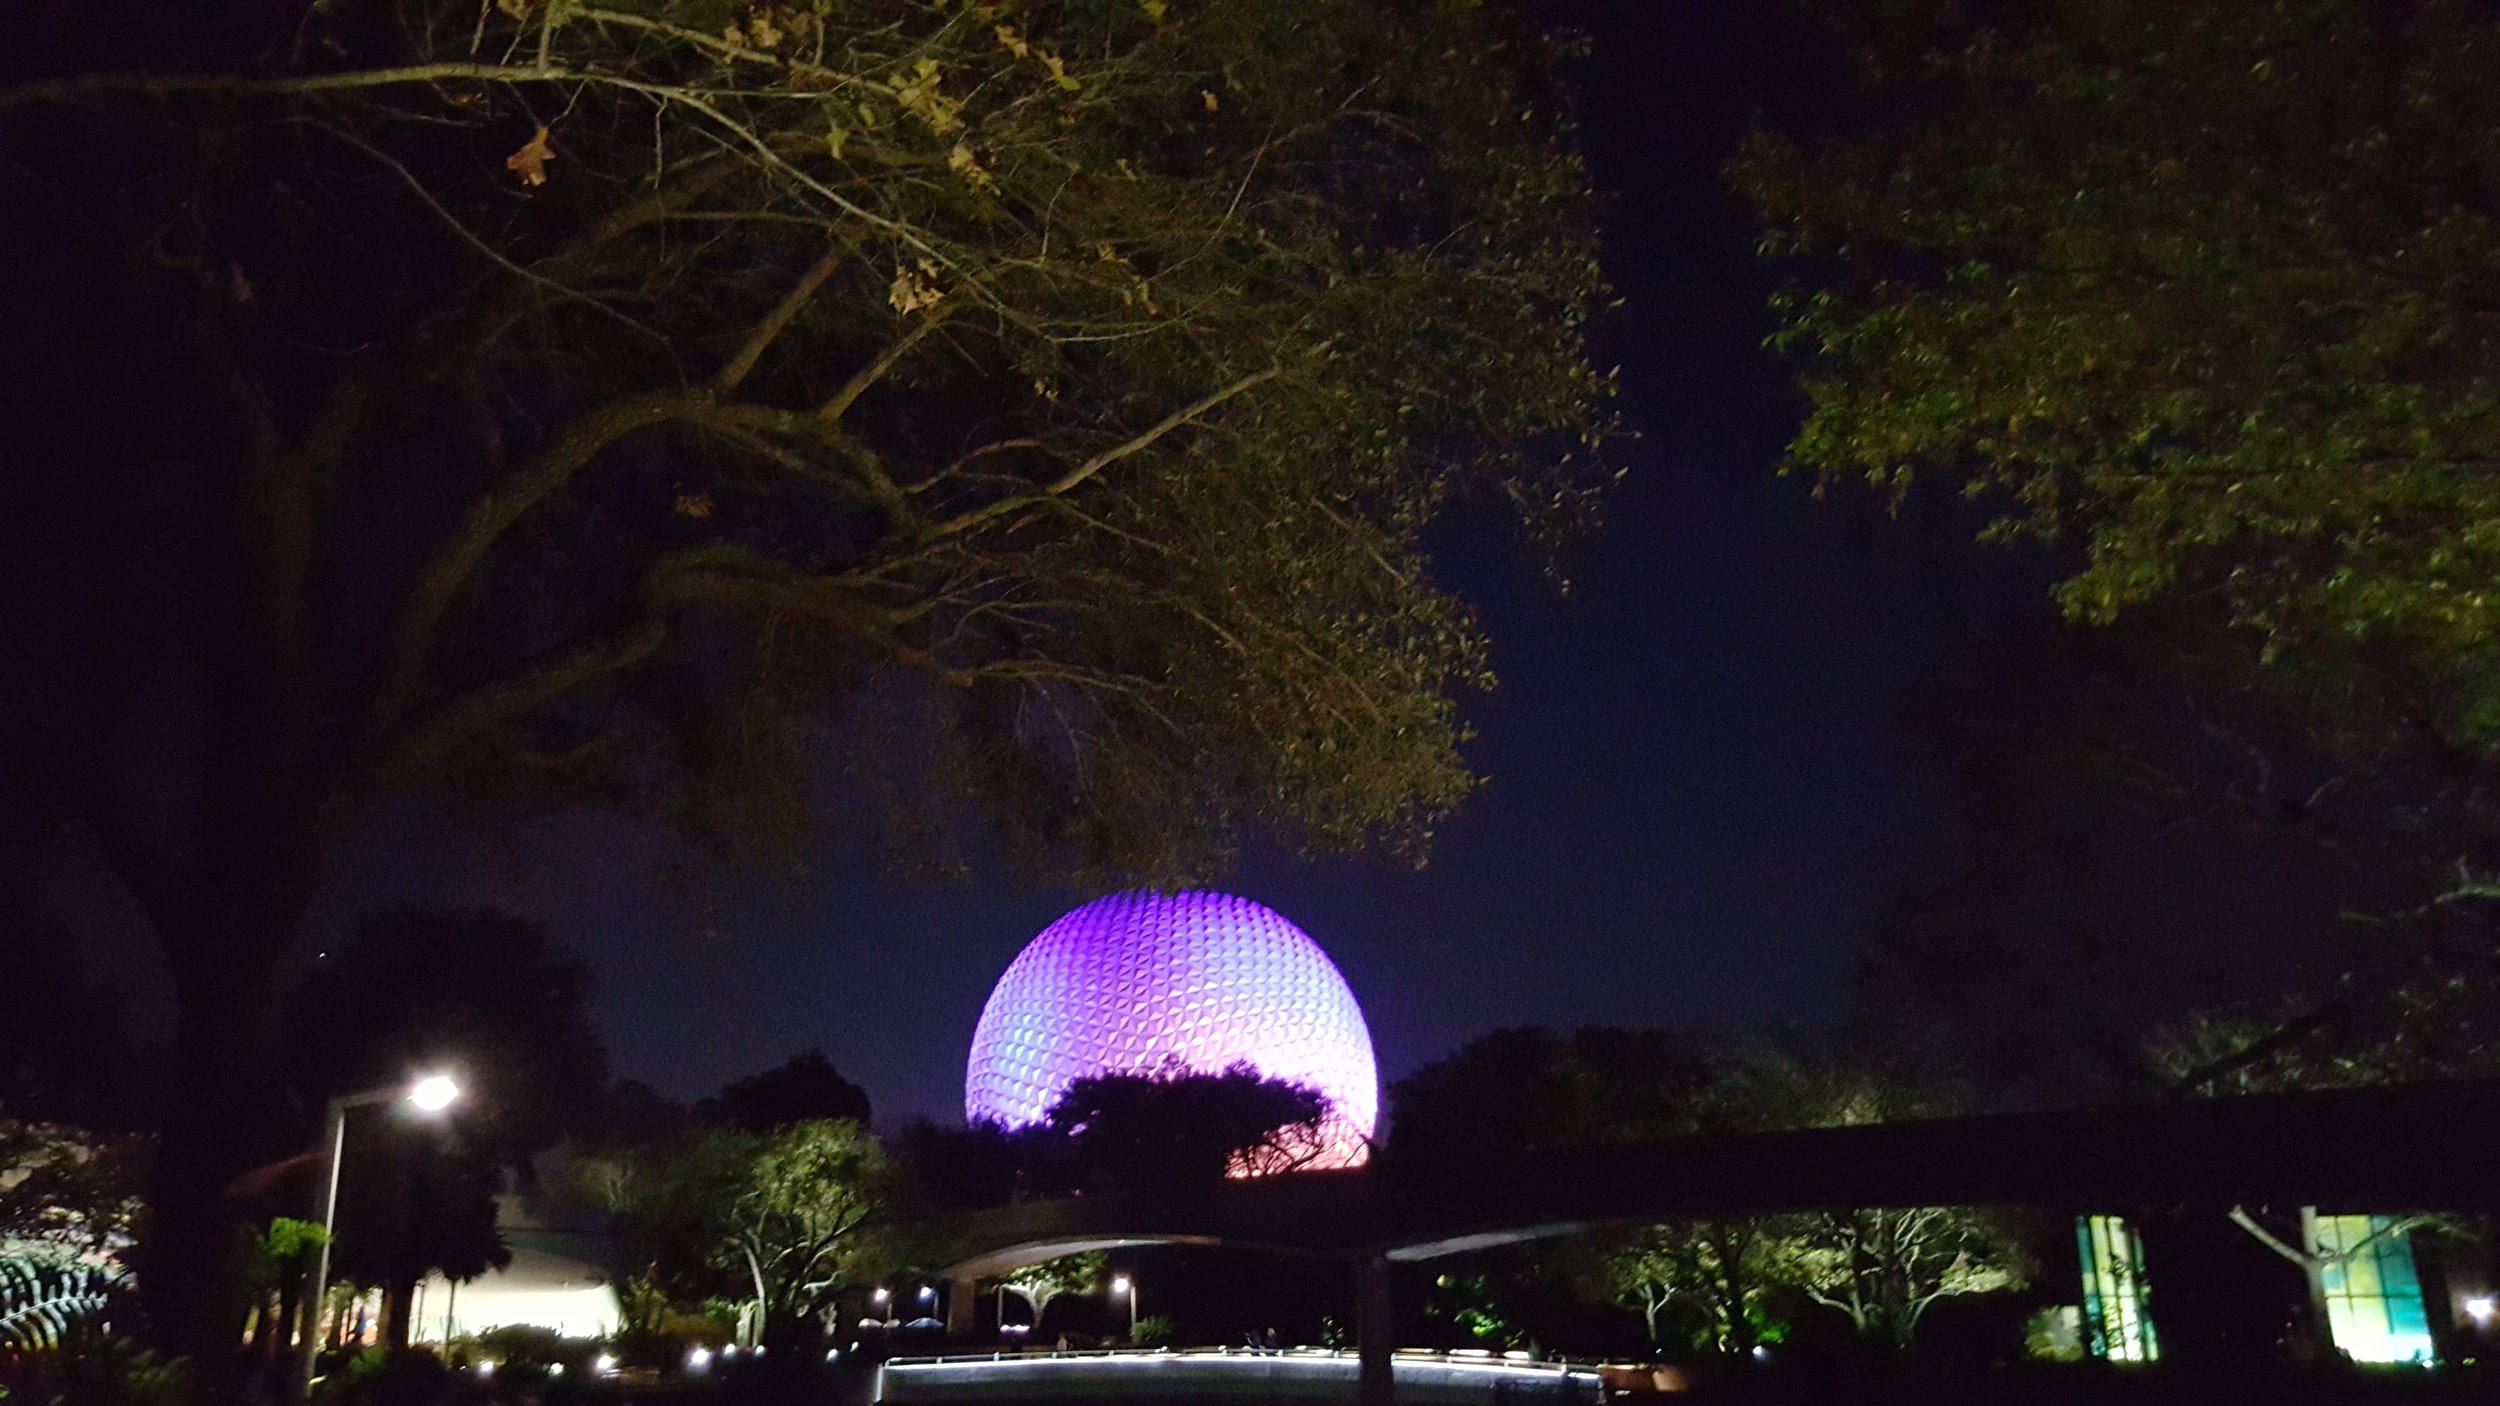 Epcot at night. View from The Land.